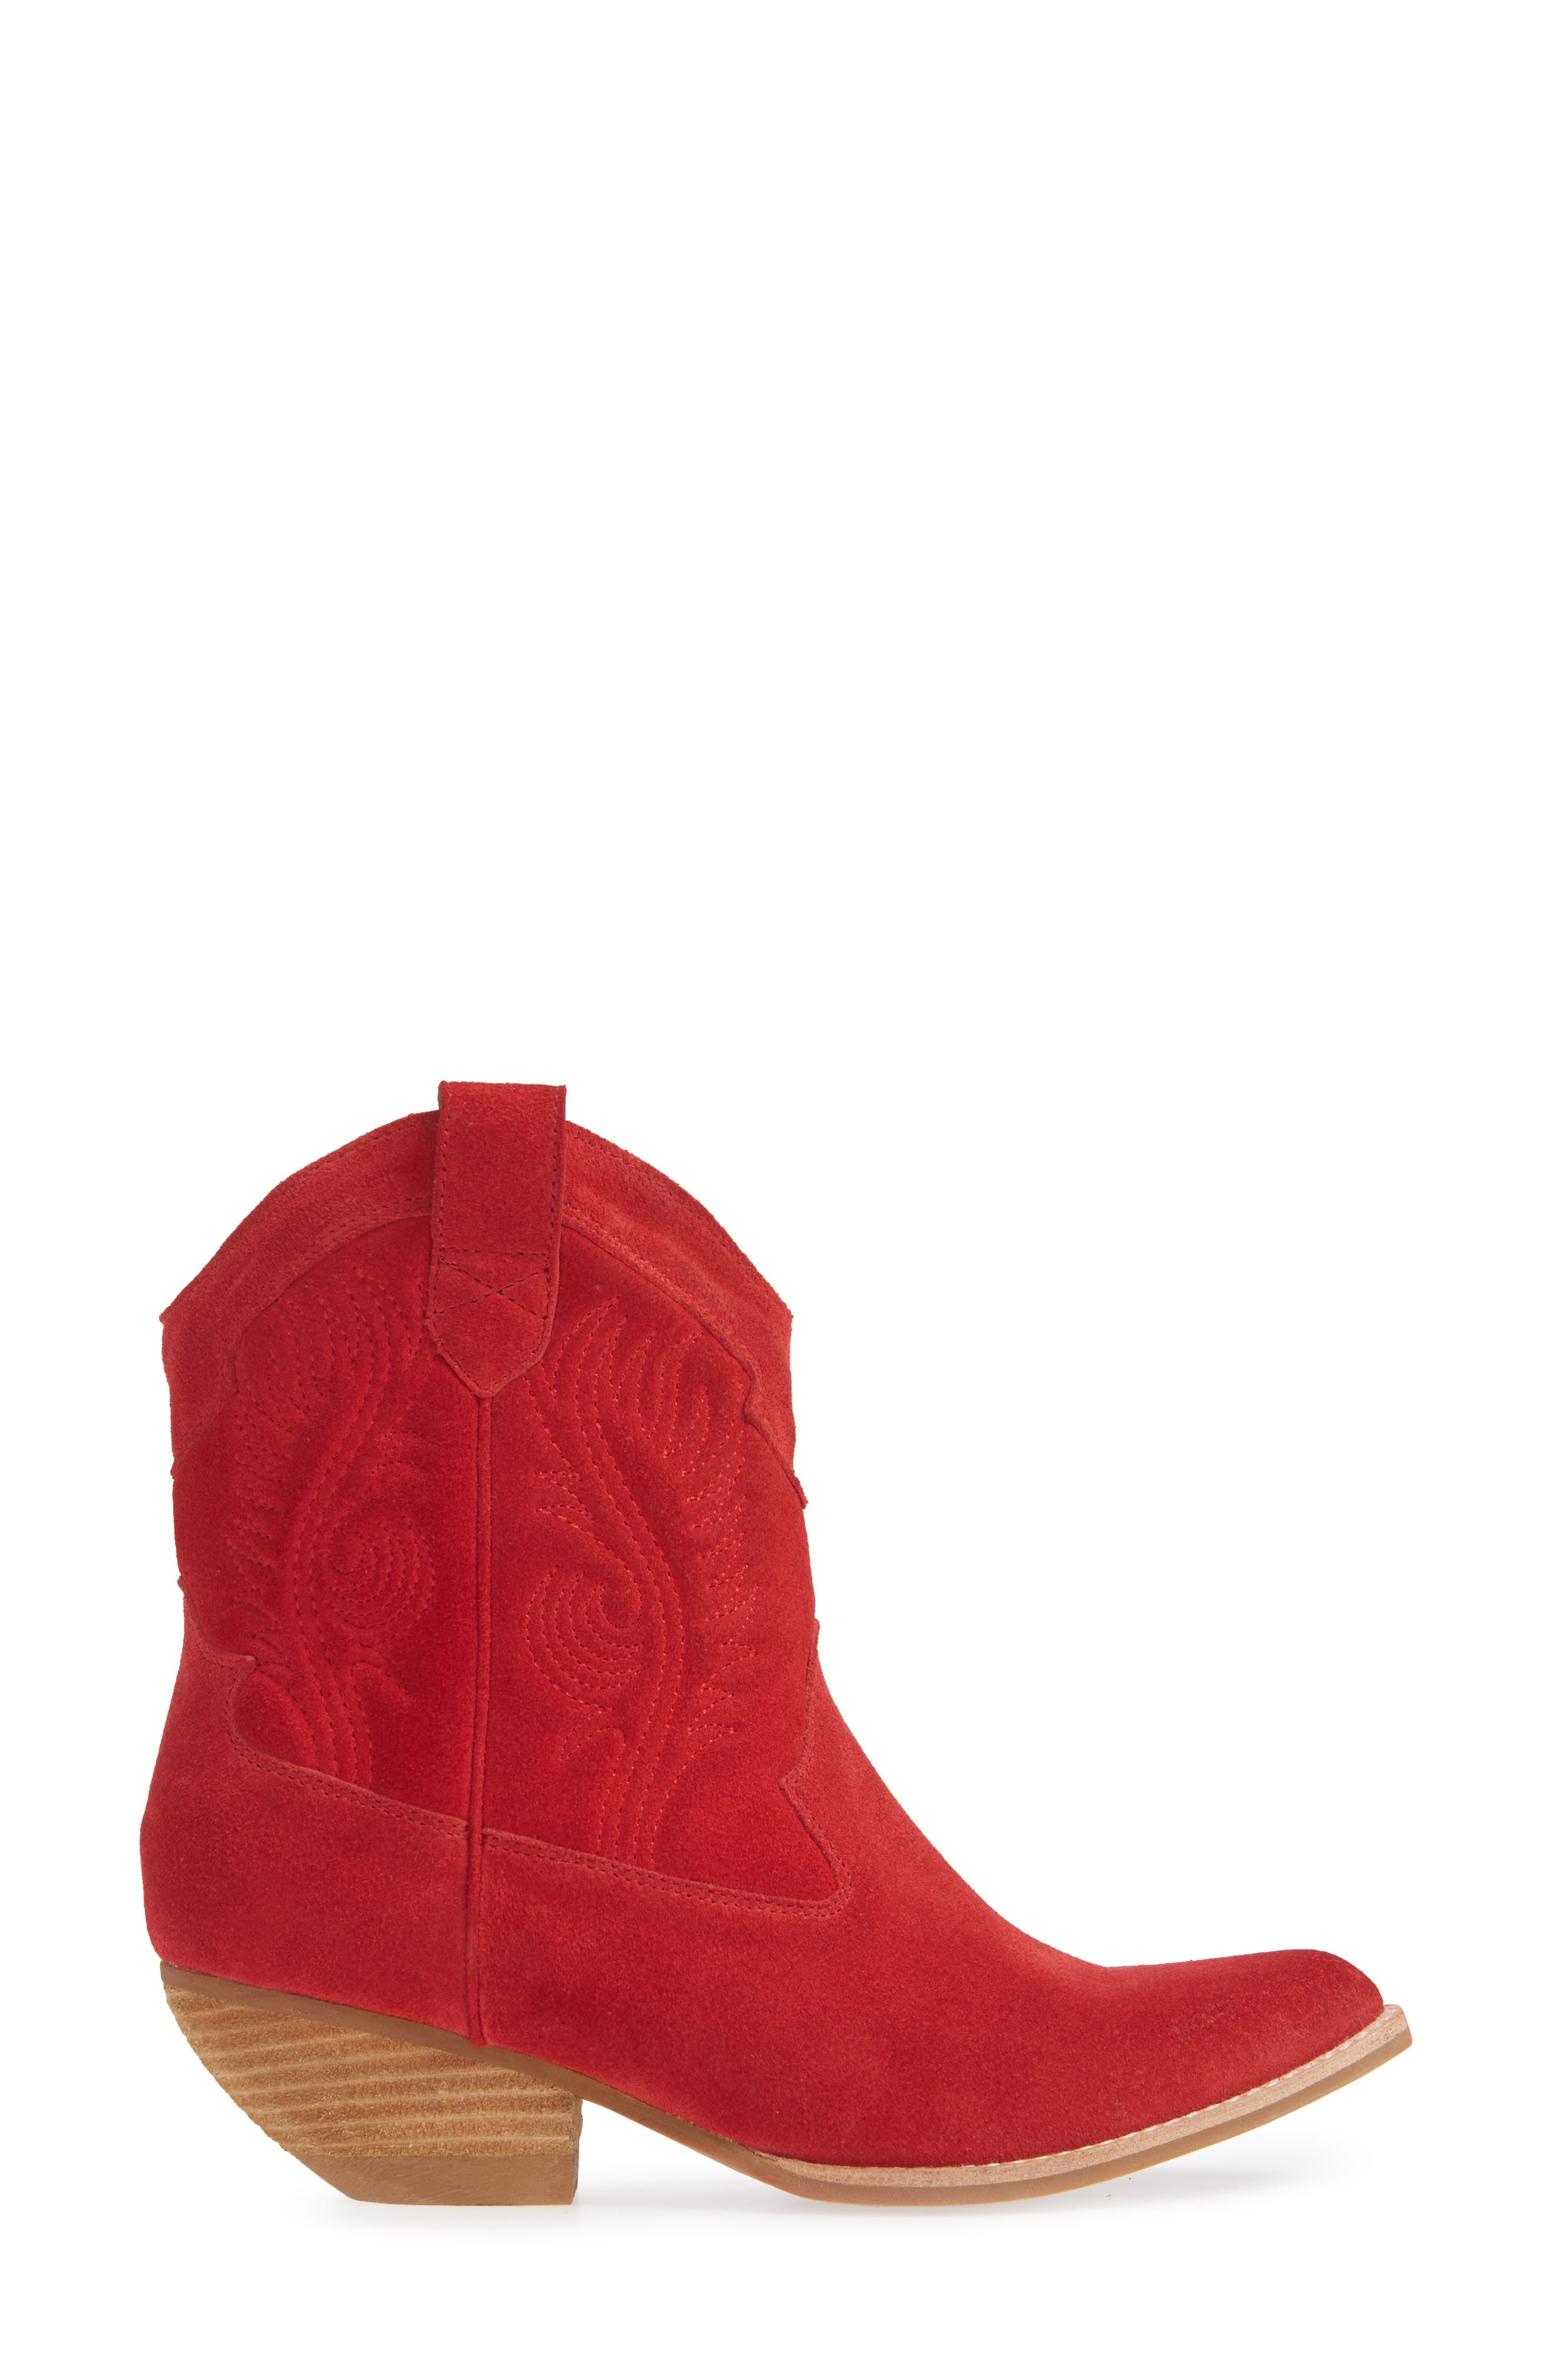 Calvera Western Boot,                             Alternate thumbnail 3, color,                             RED SUEDE